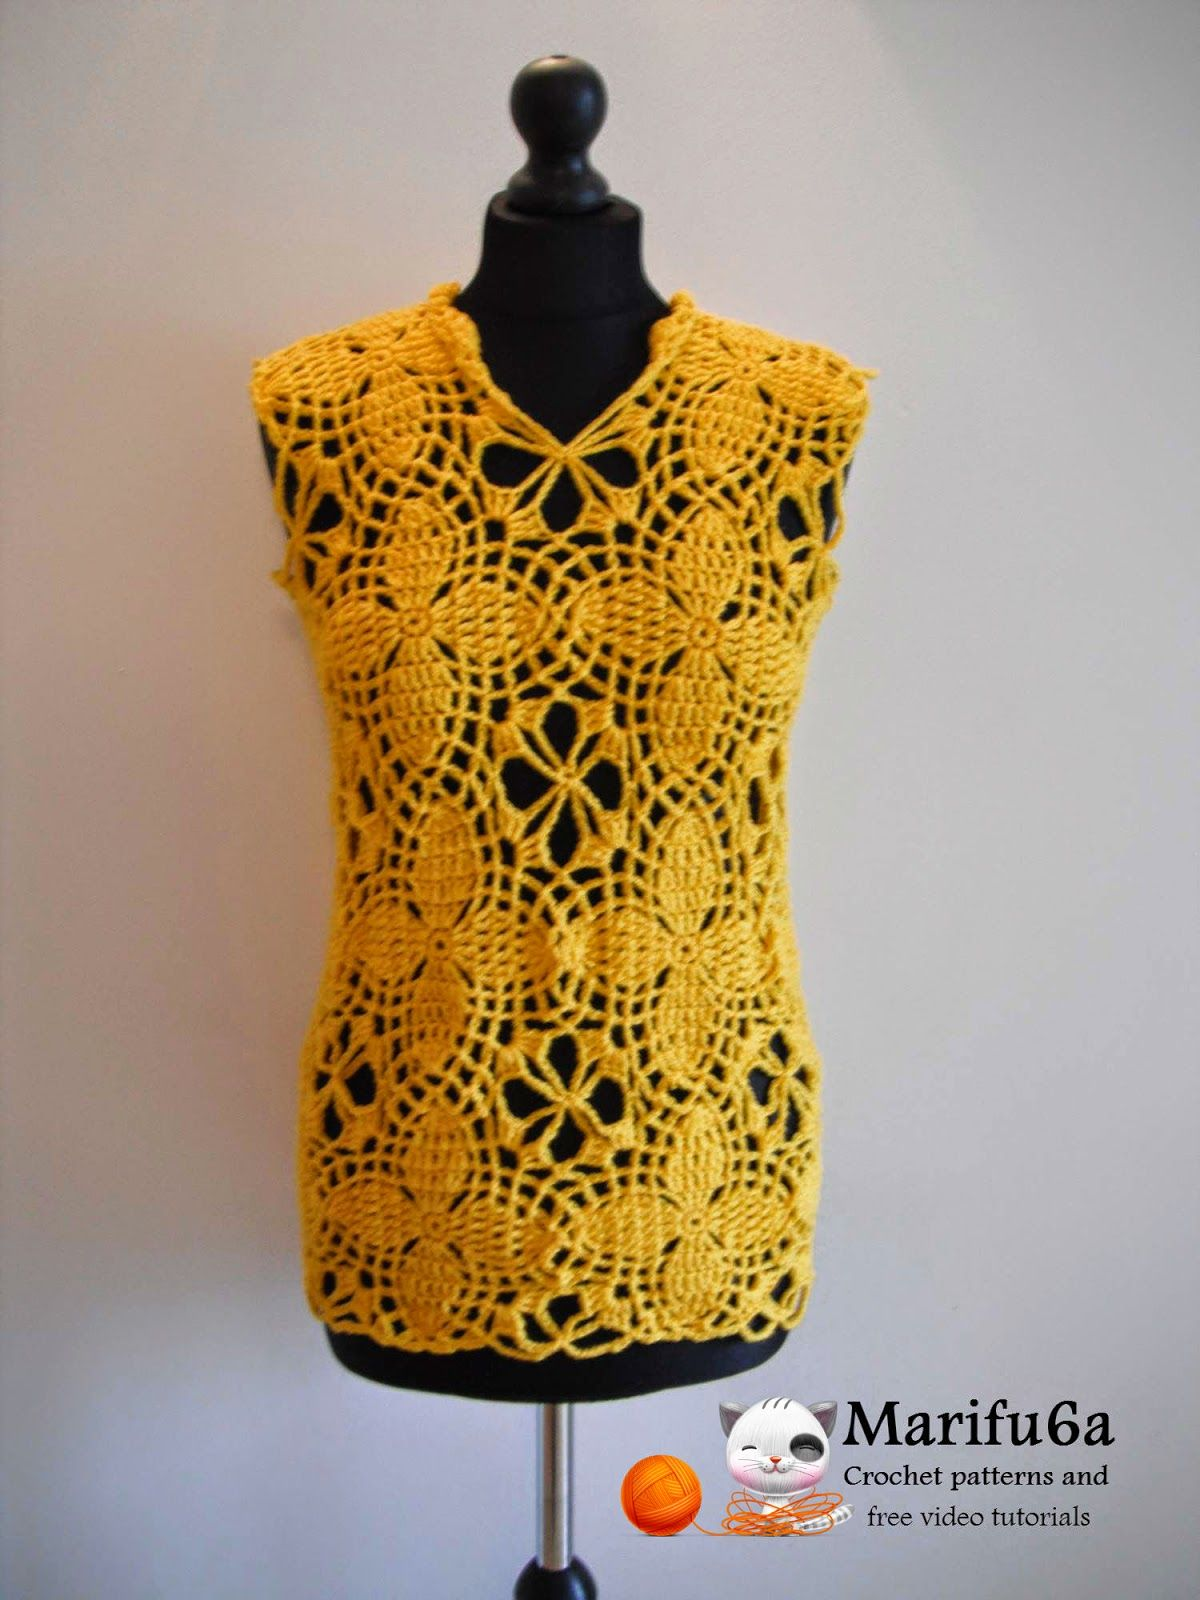 Free crochet patterns and video tutorials how to crochet yellow free crochet patterns and video tutorials how to crochet yellow motif tunic top sweater by bankloansurffo Gallery